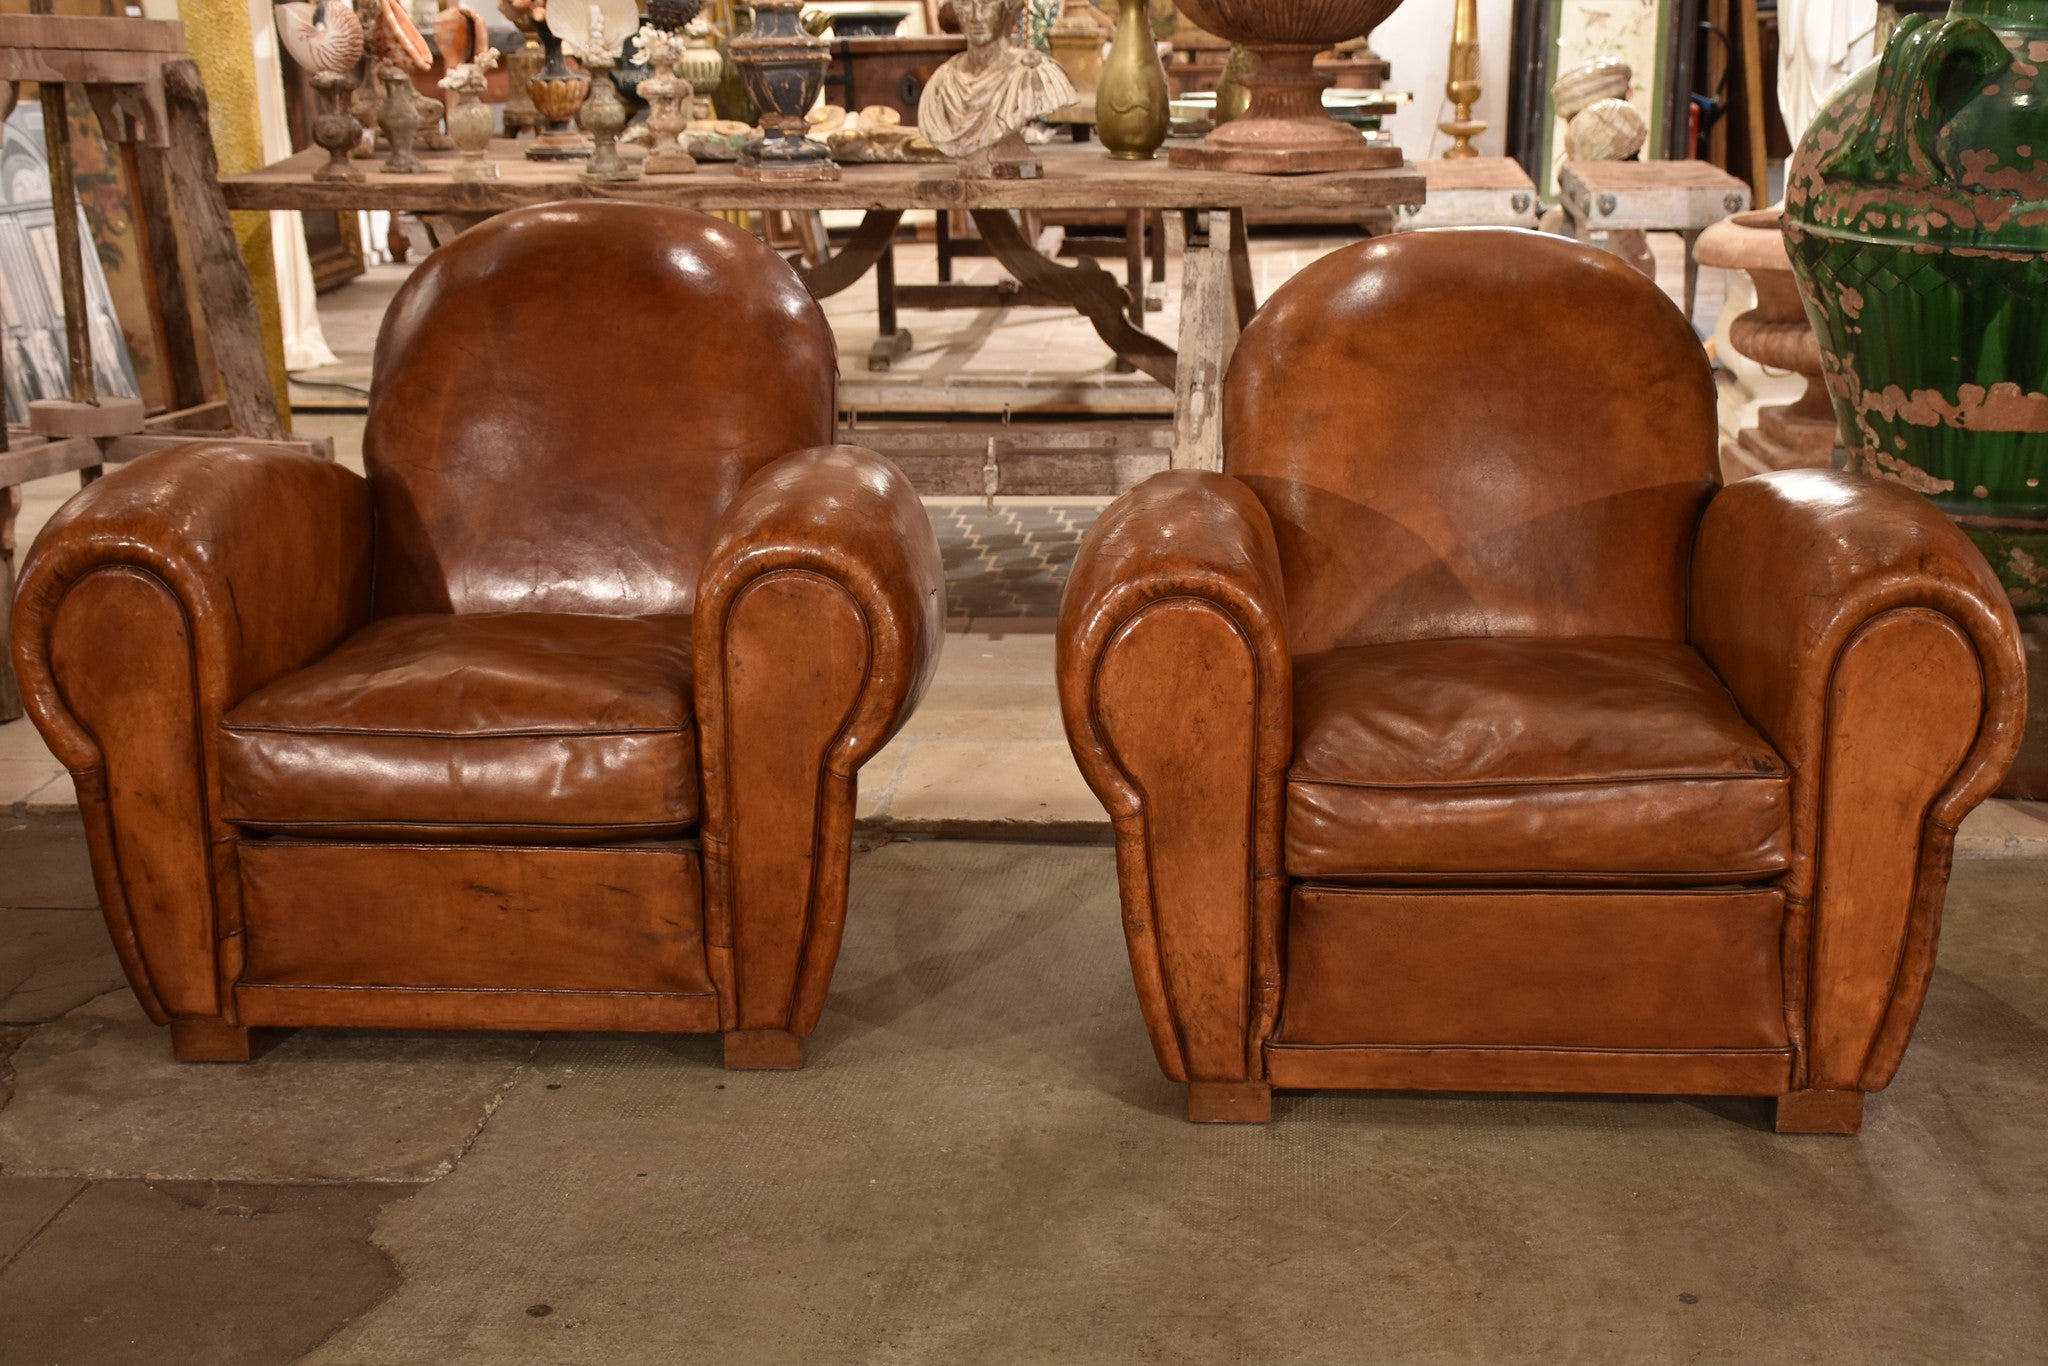 Pair of large French club chairs - 1950's